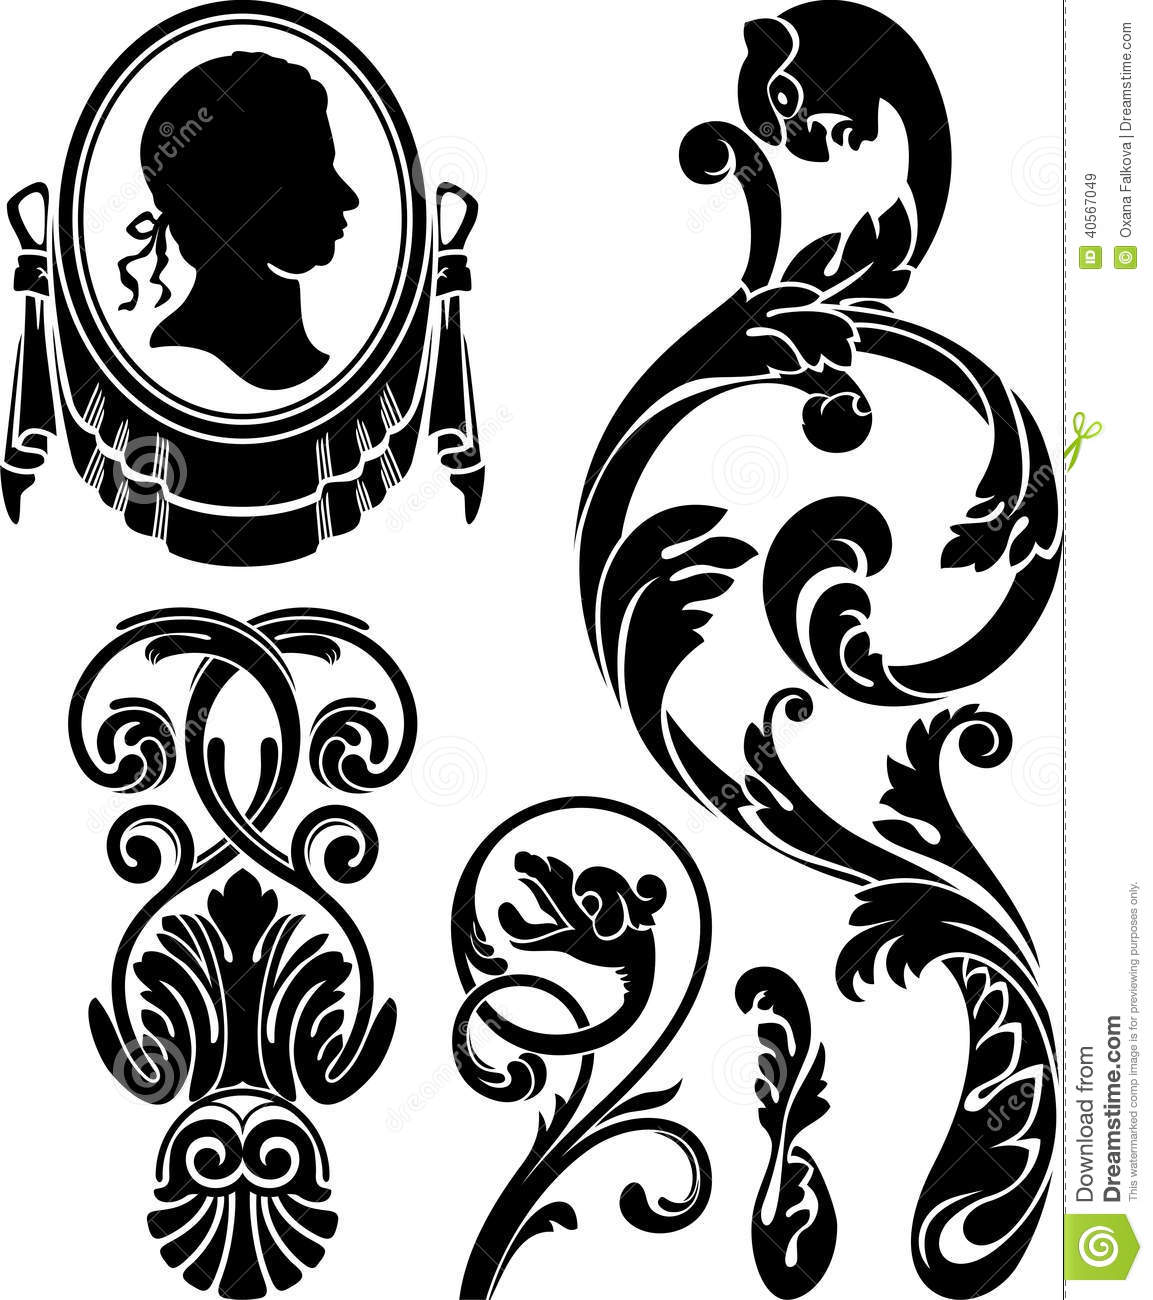 Victorian Design Elements victorian design elements stock vector - image: 40567049